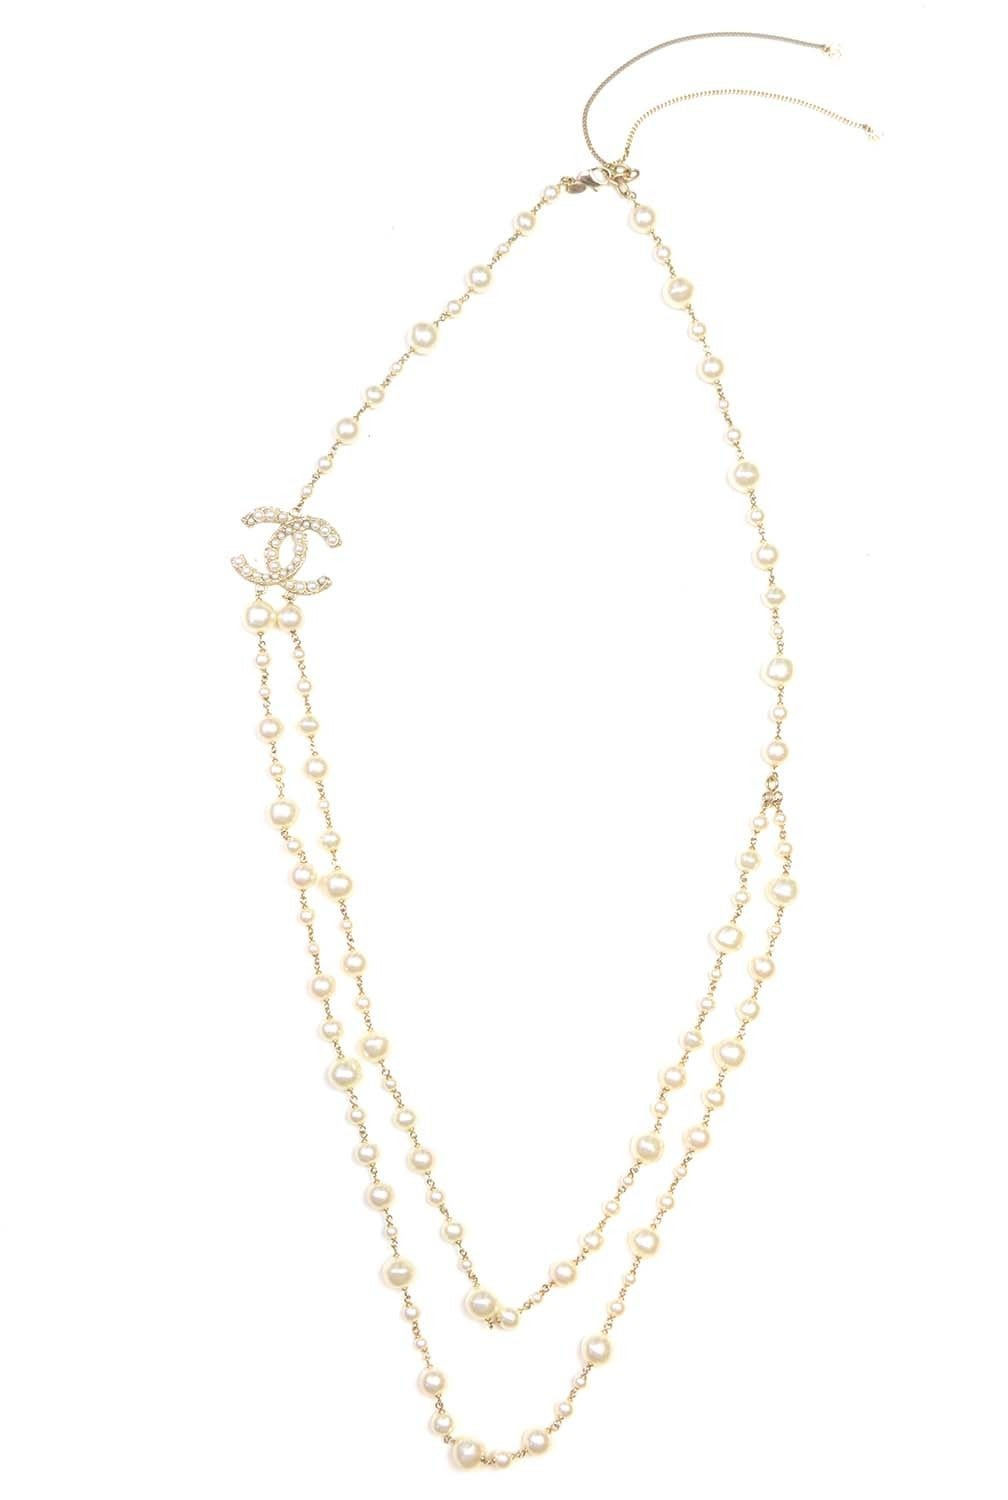 CHANEL 2011 X-Long Double Strand Faux Pearl Necklace w/ CC 3